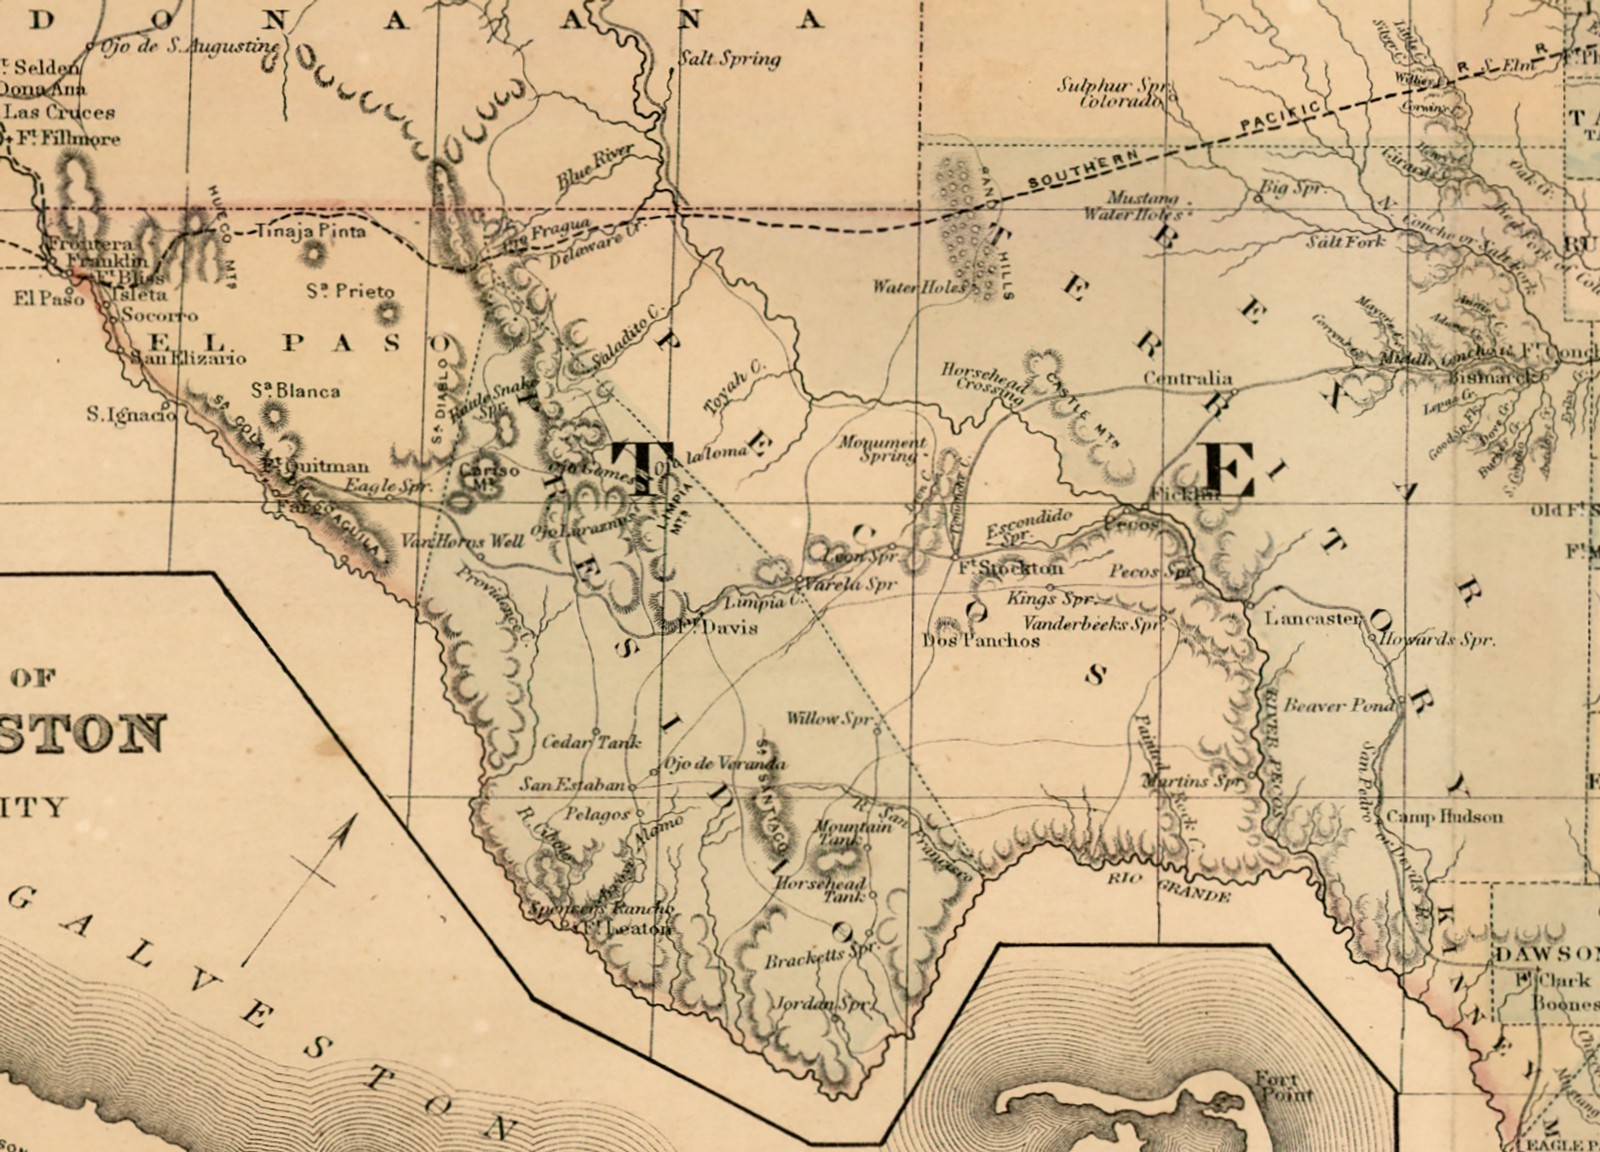 County Map of the State of Texas, 1873 by W.H. Gamble